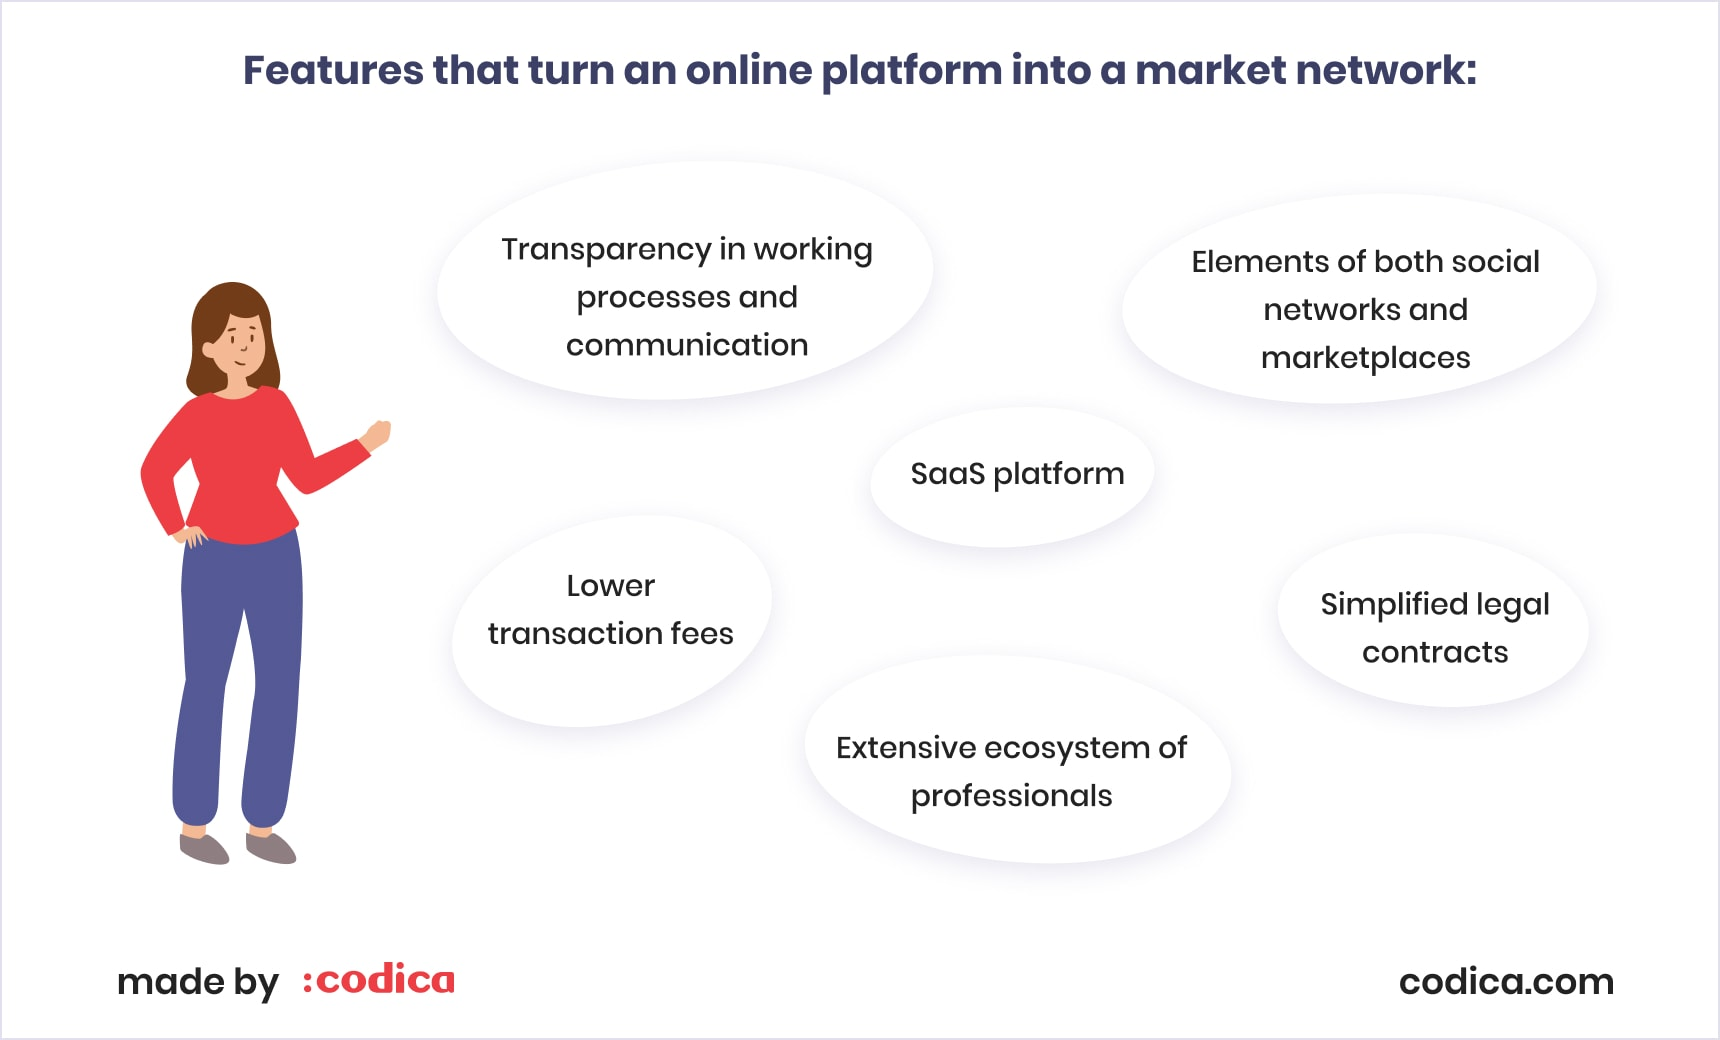 The least of features for a market network